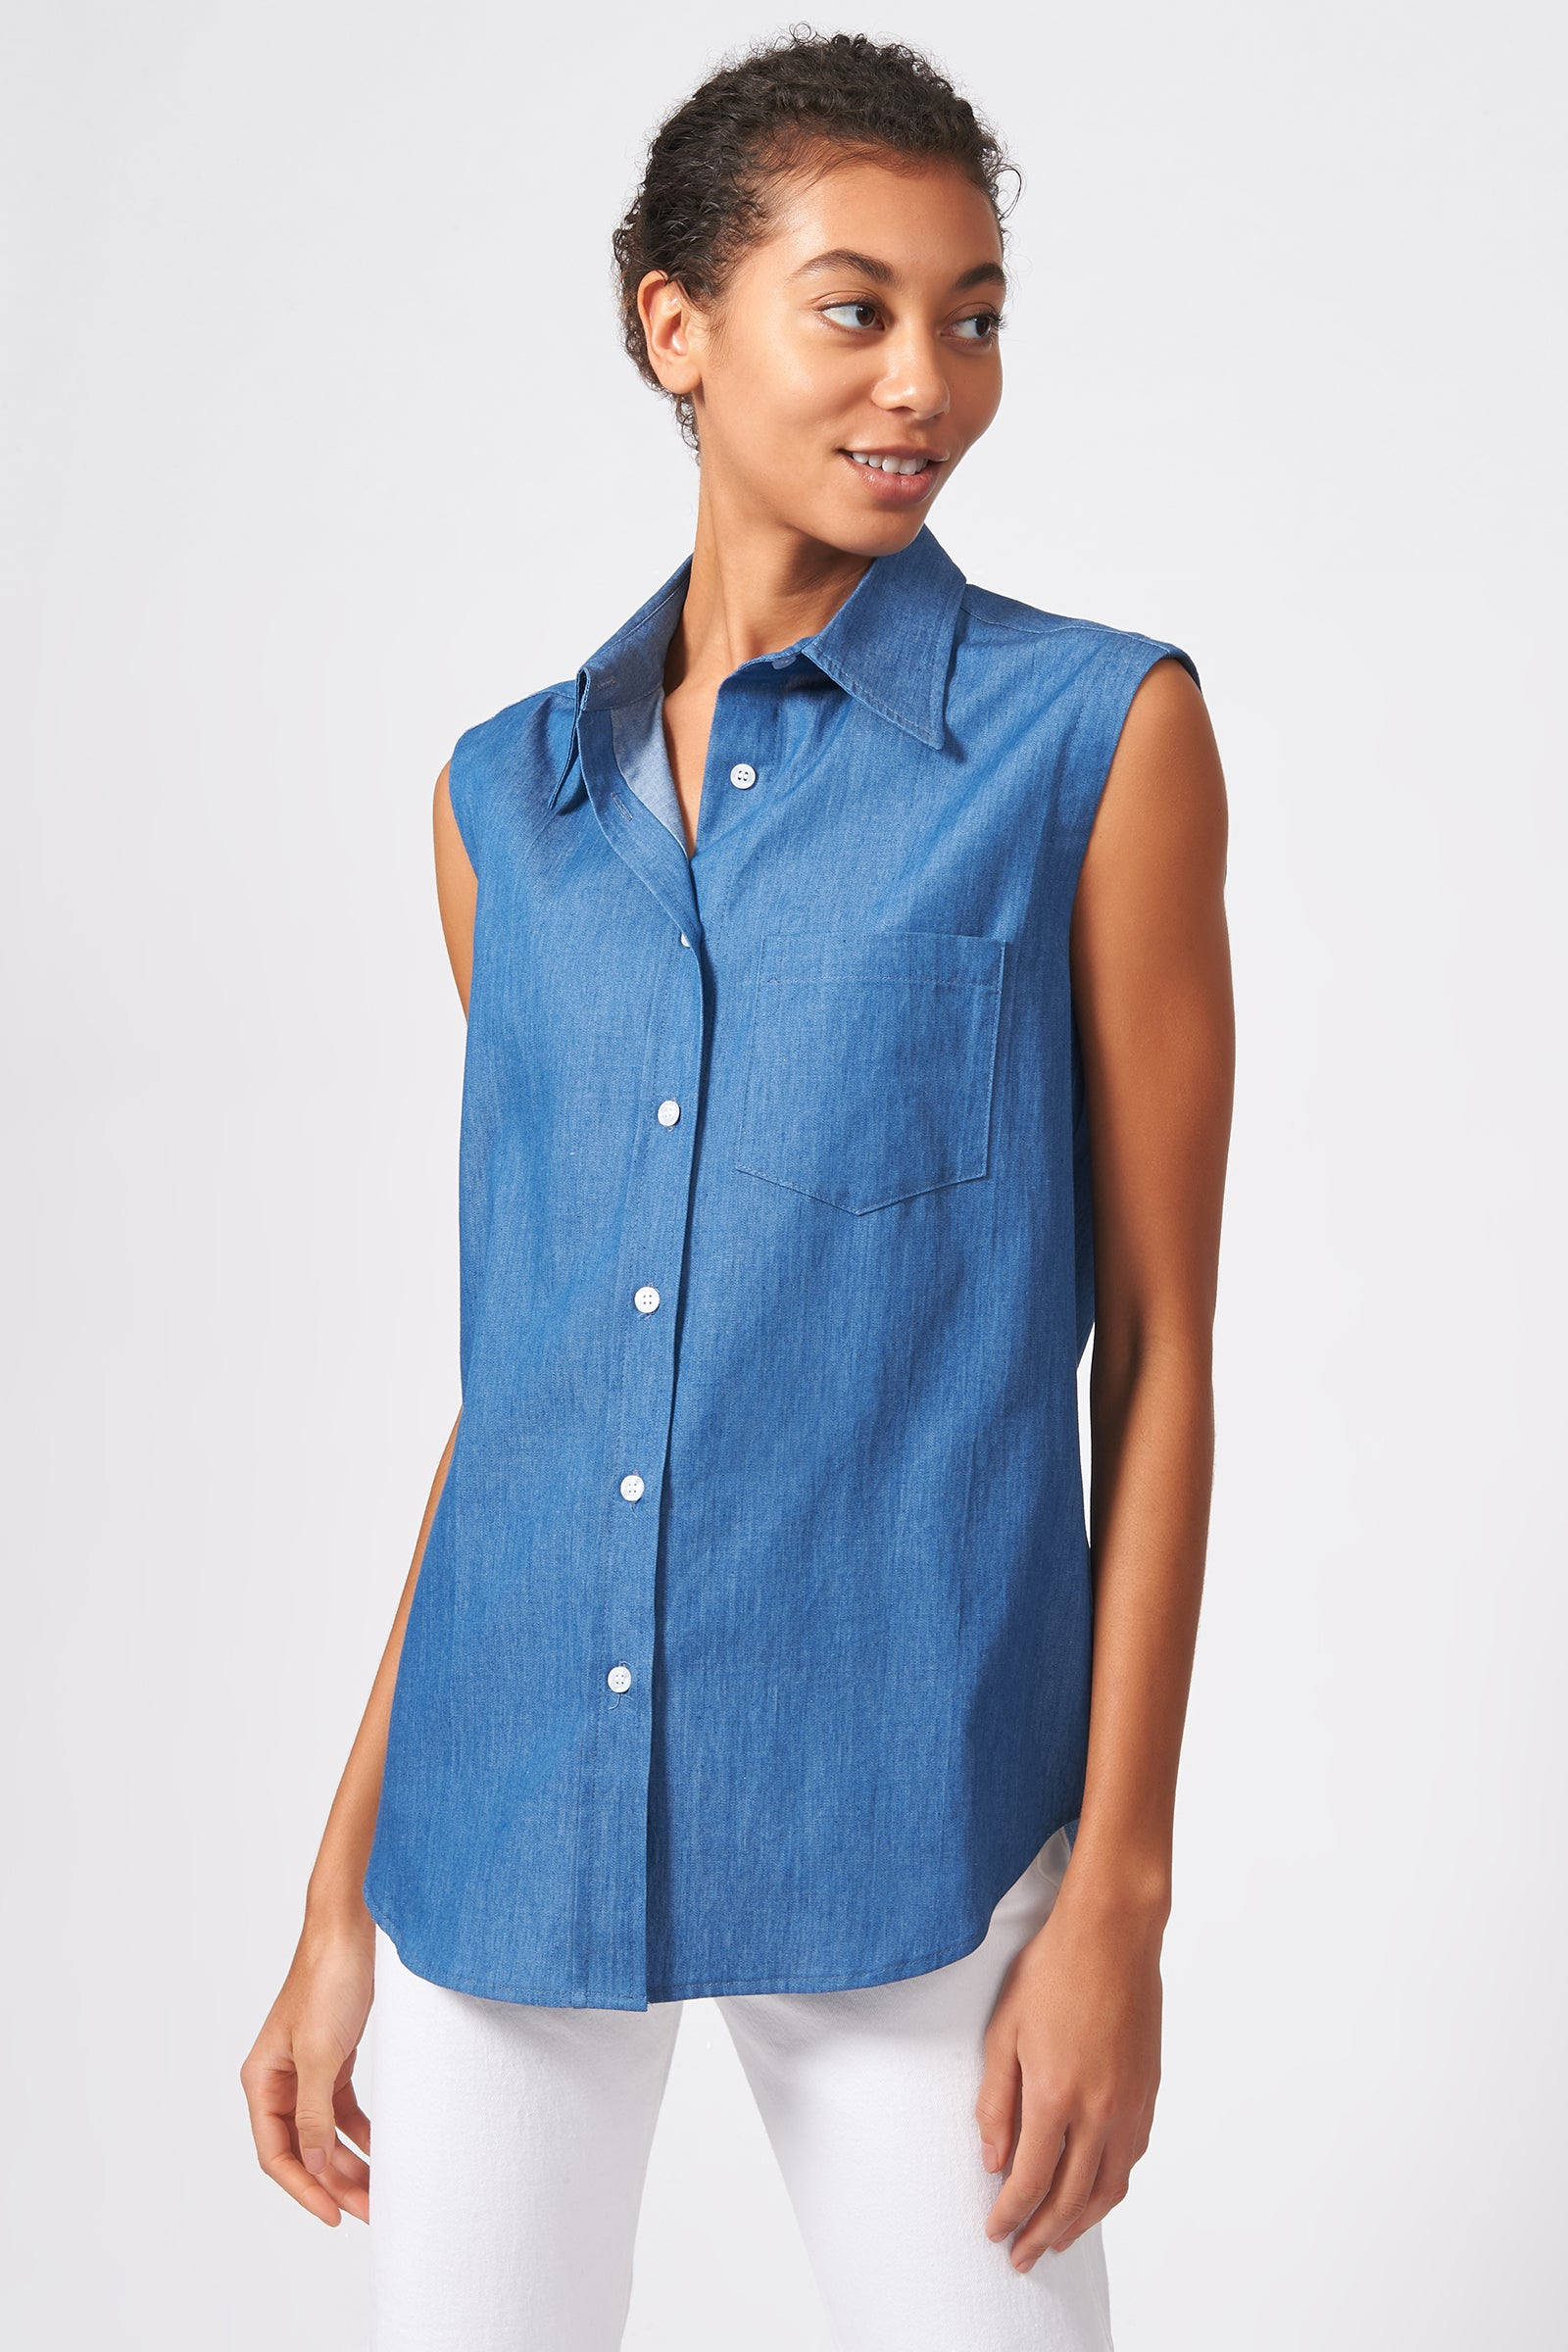 Kal Rieman Sleeveless Collared Shirt in Light Indigo on Model Front View